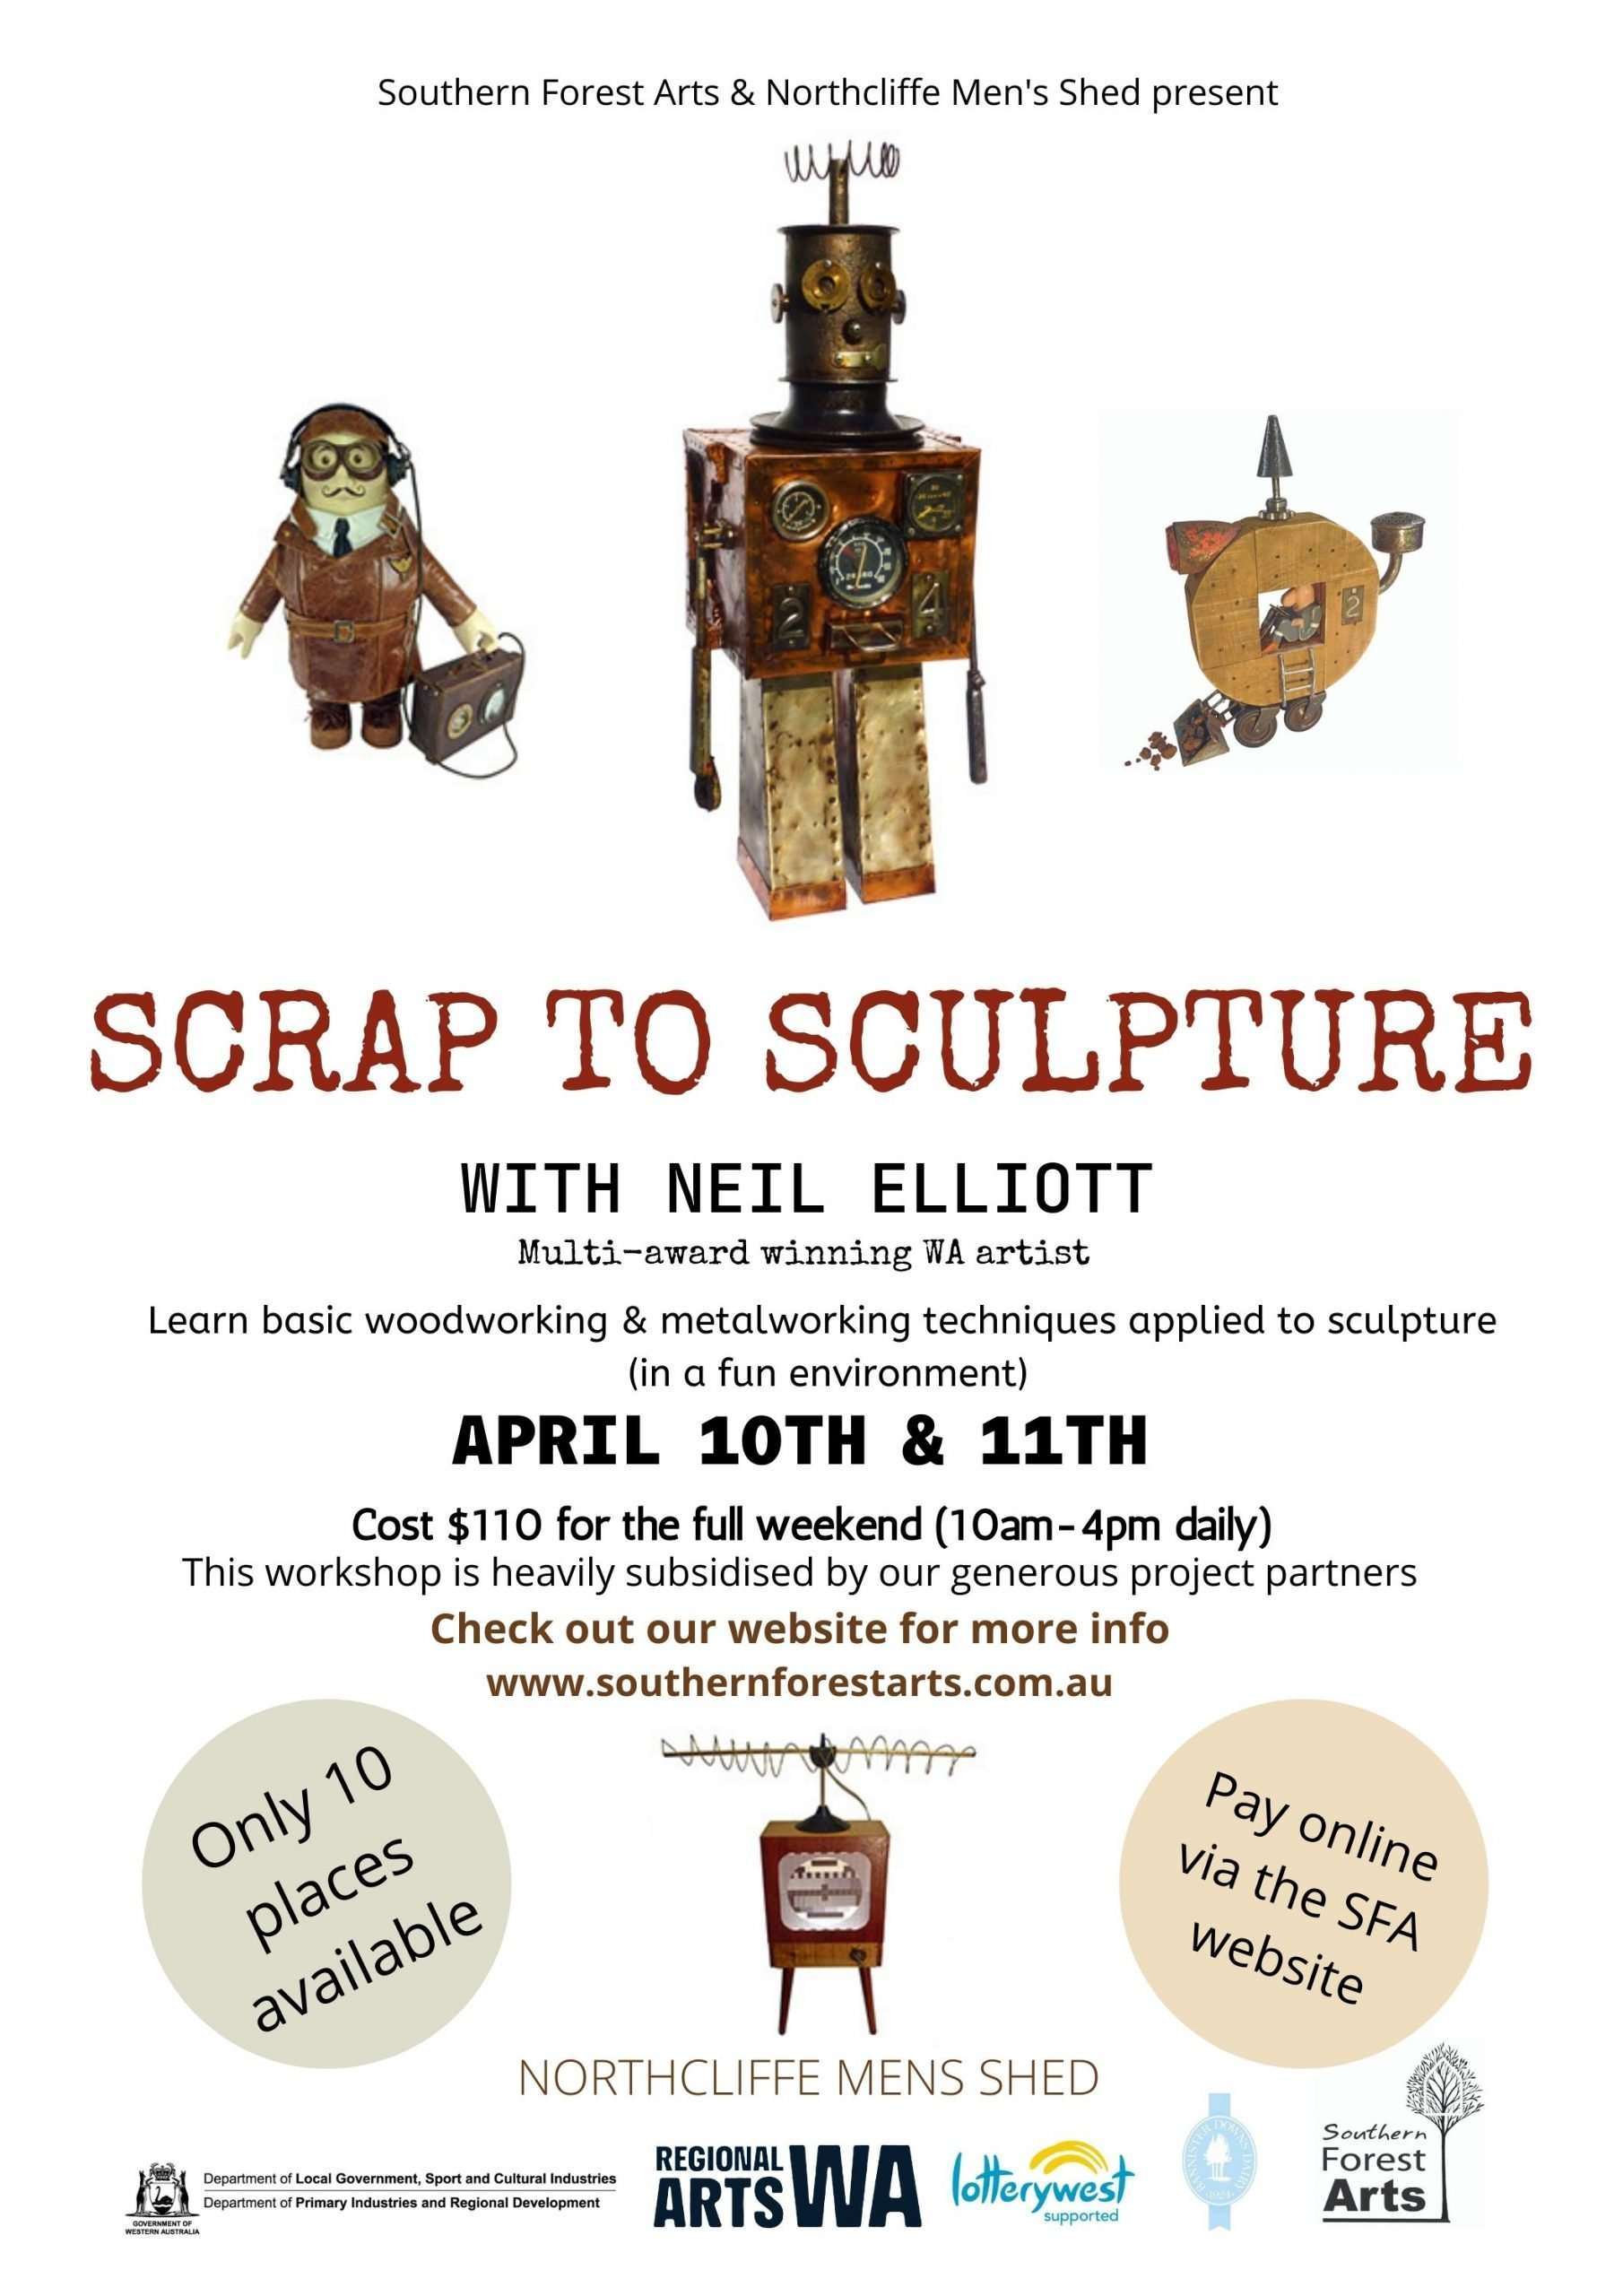 SCRAP-TO-SCULPTURE - Neil Elliot, Northcliffe Mens Shed and Southern Forest Arts